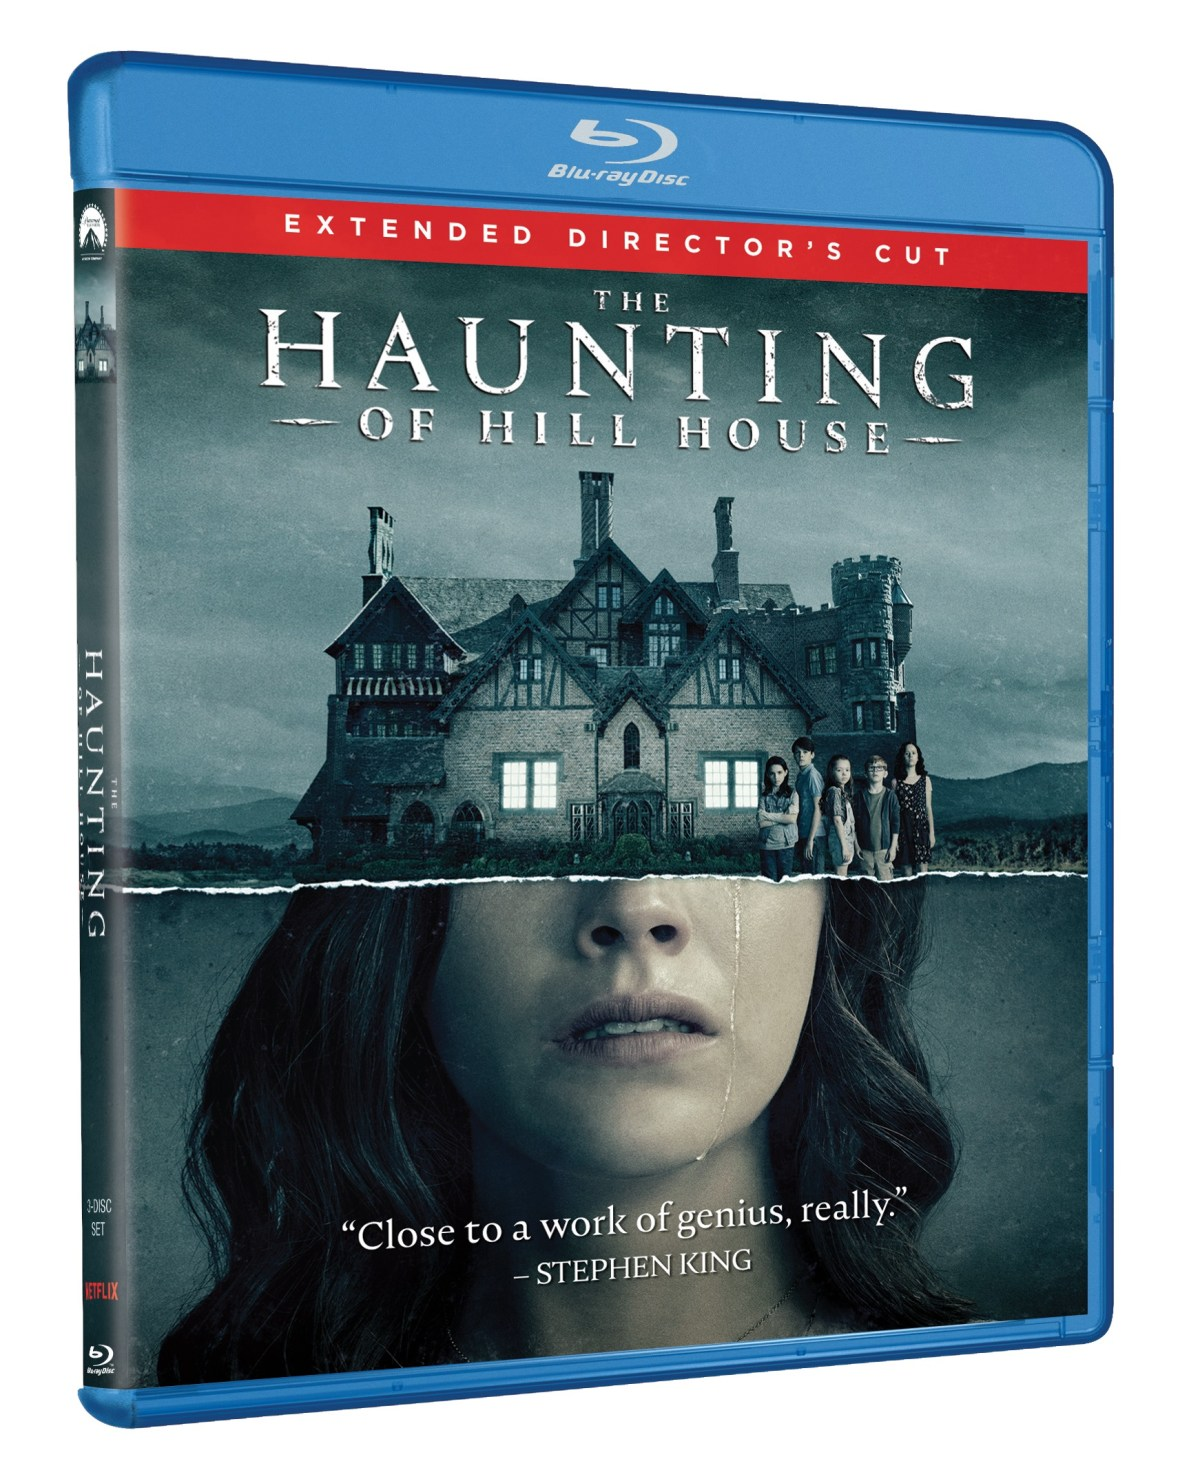 The Haunting of Hill House Blu-ray cover